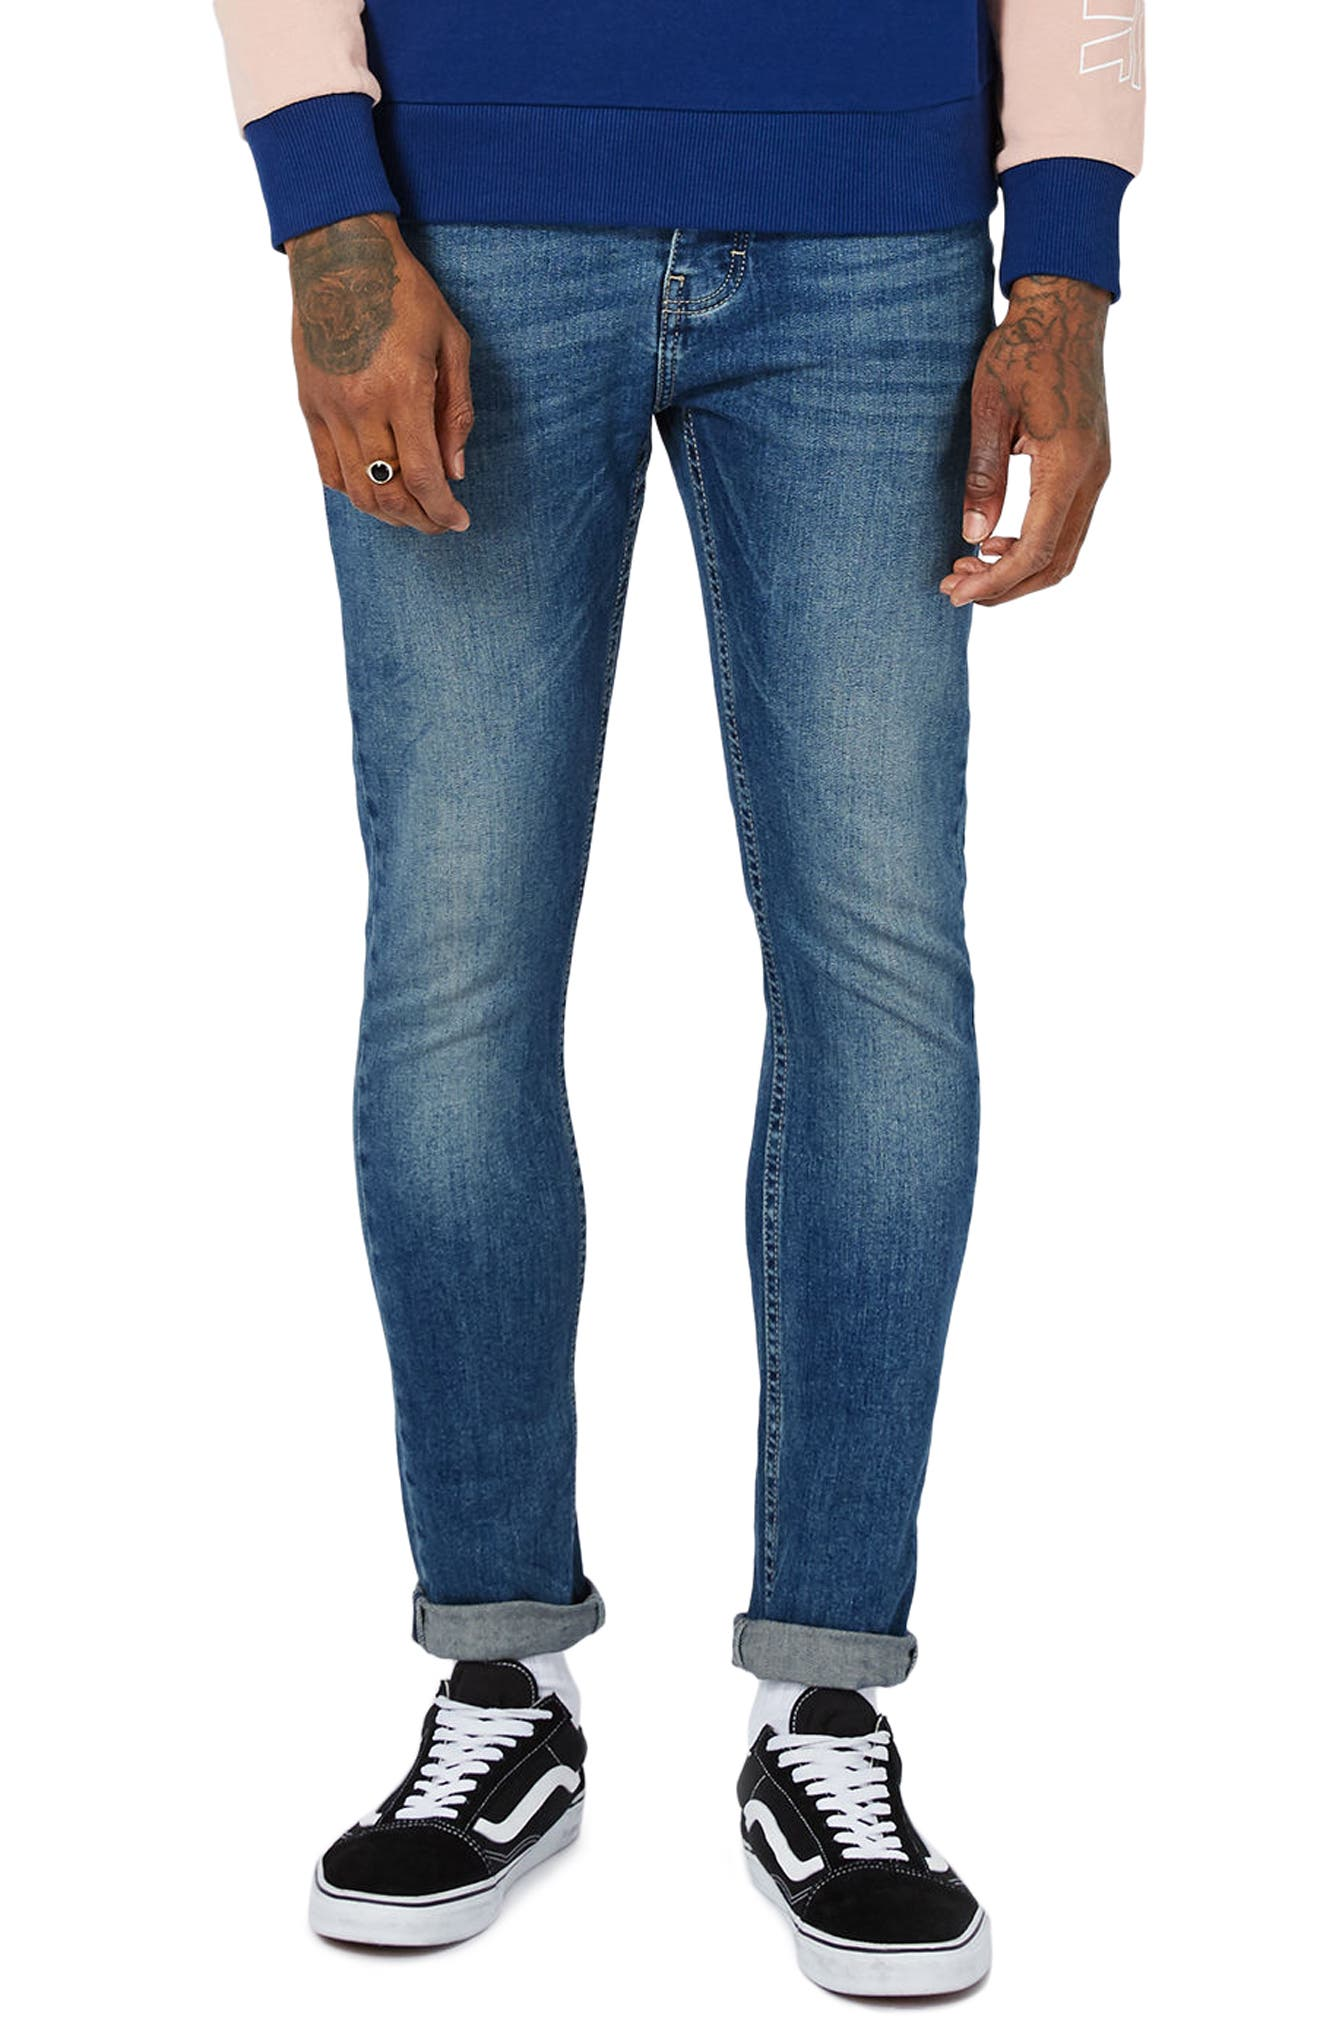 Stretch Skinny Jeans,                         Main,                         color, Mid Blue